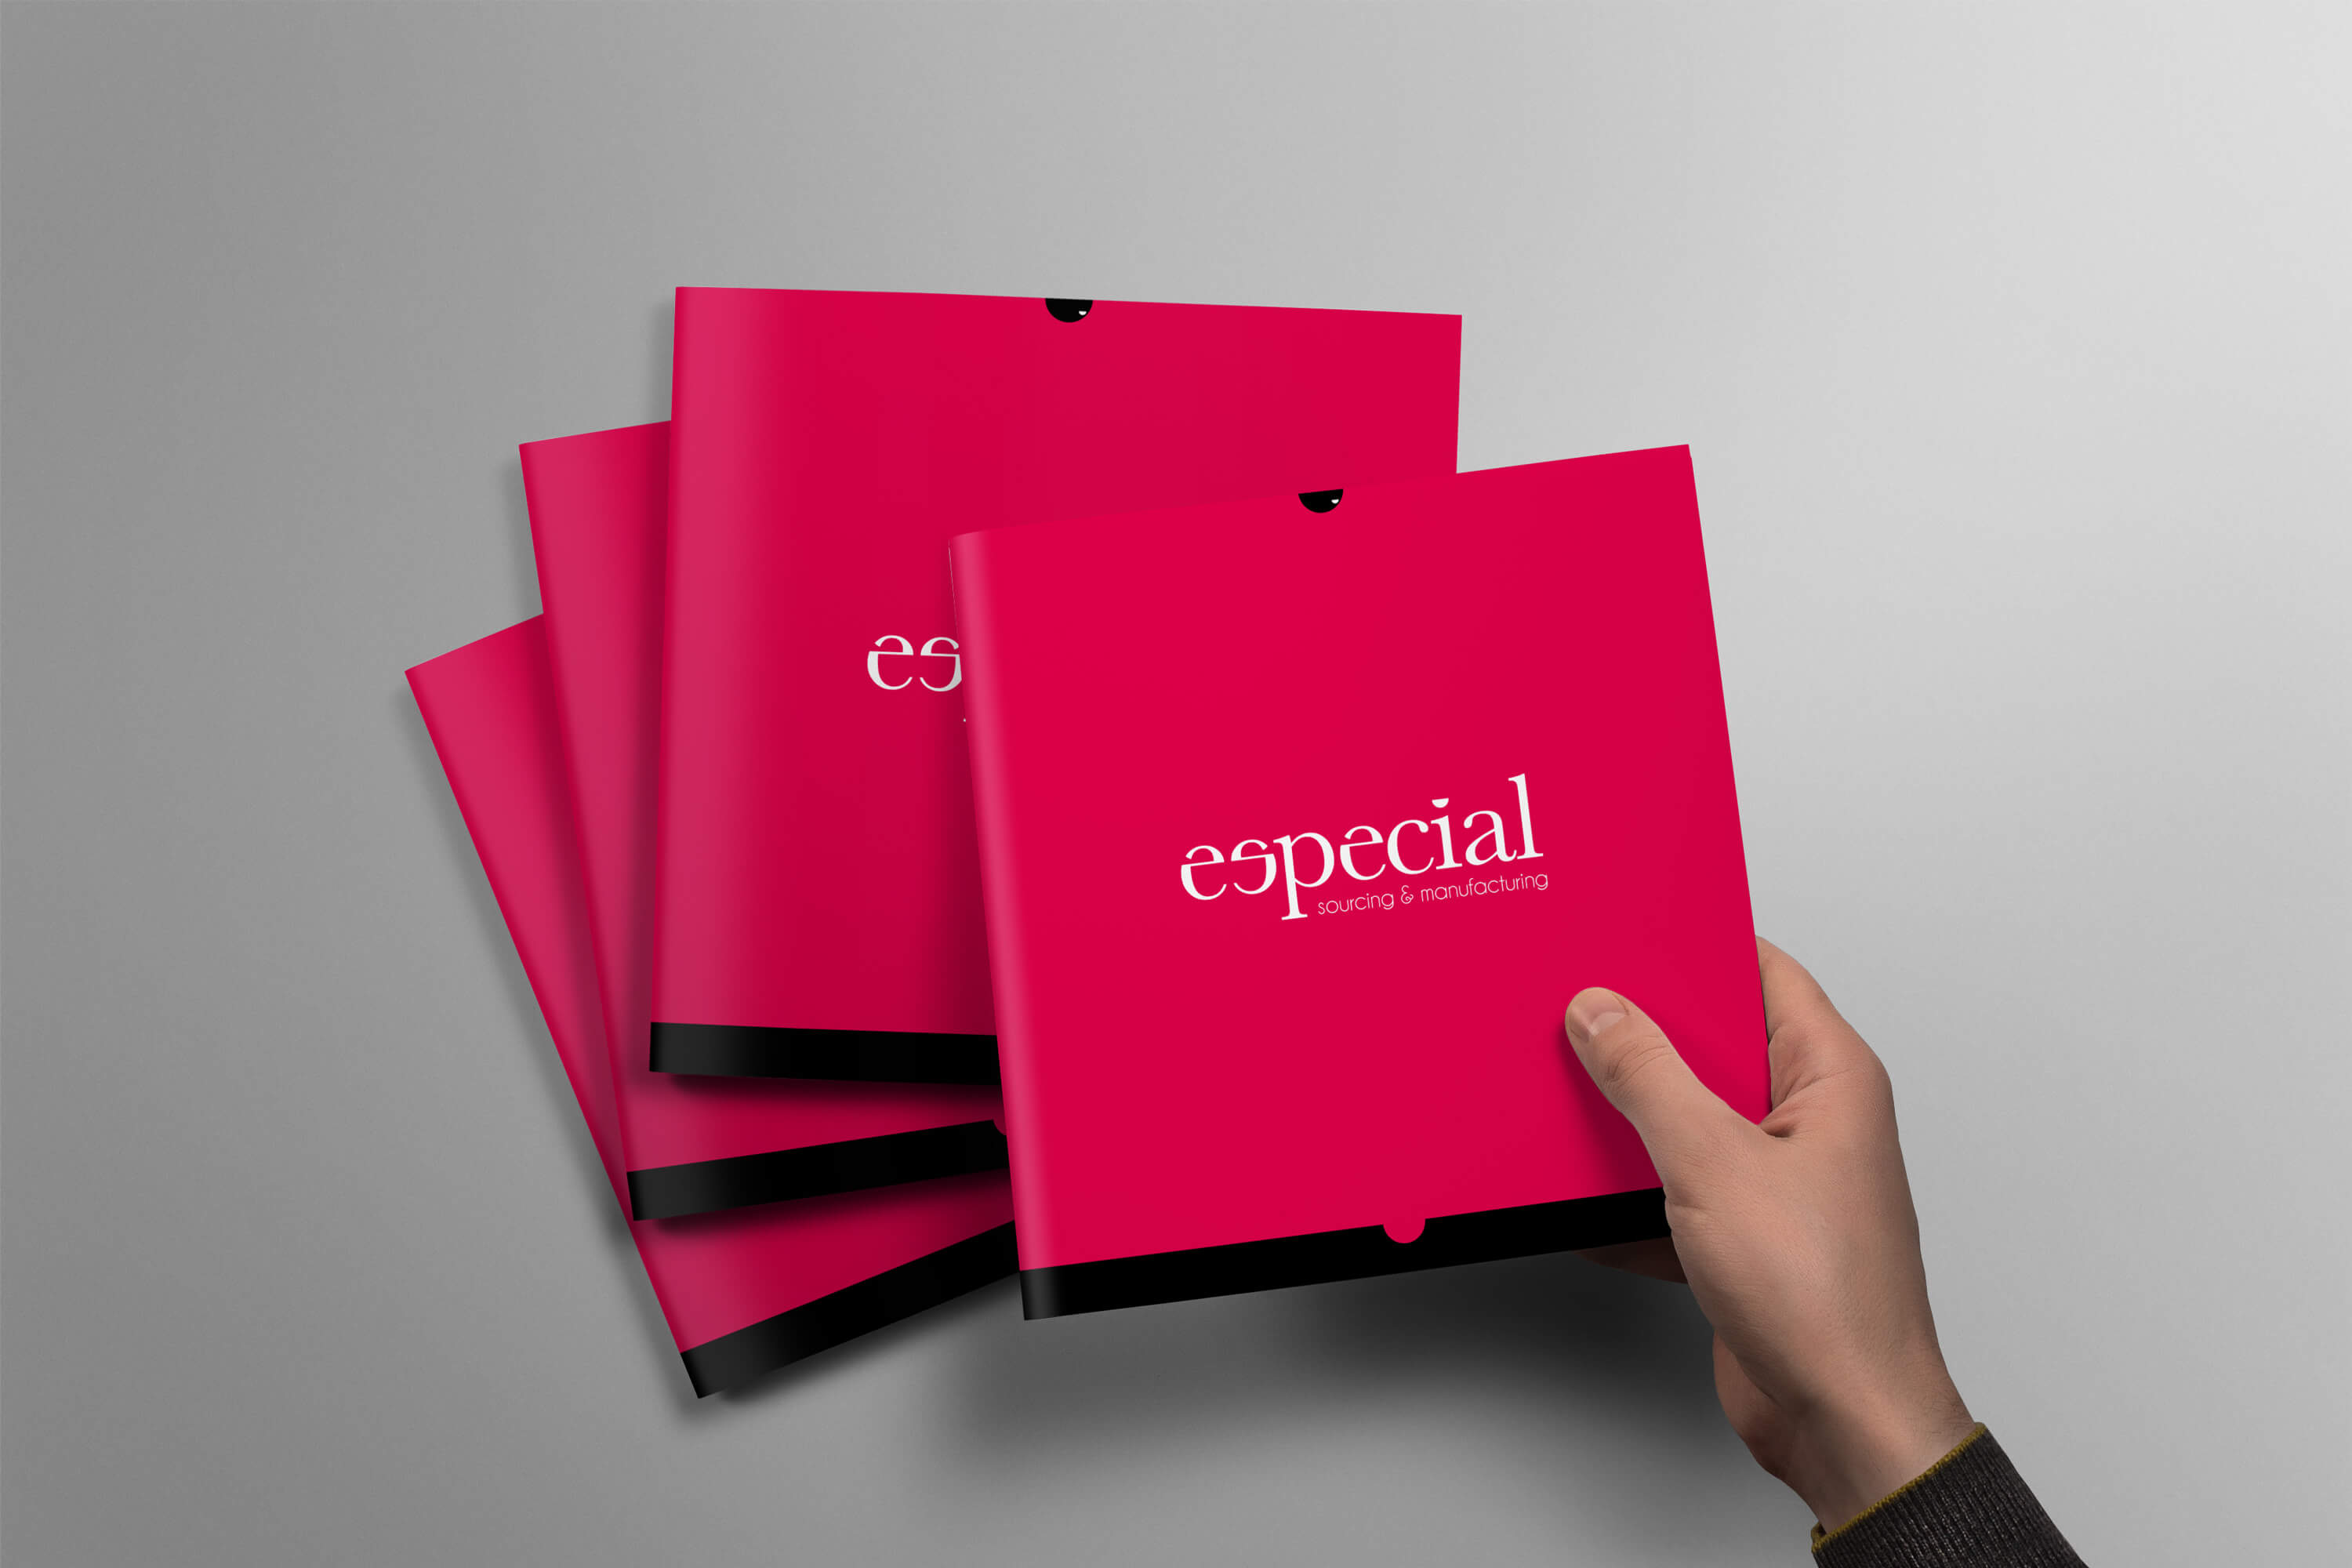 Person taking a copy of the Especial Sourcing and Manufacturing brochure from the top of a pile of brochures